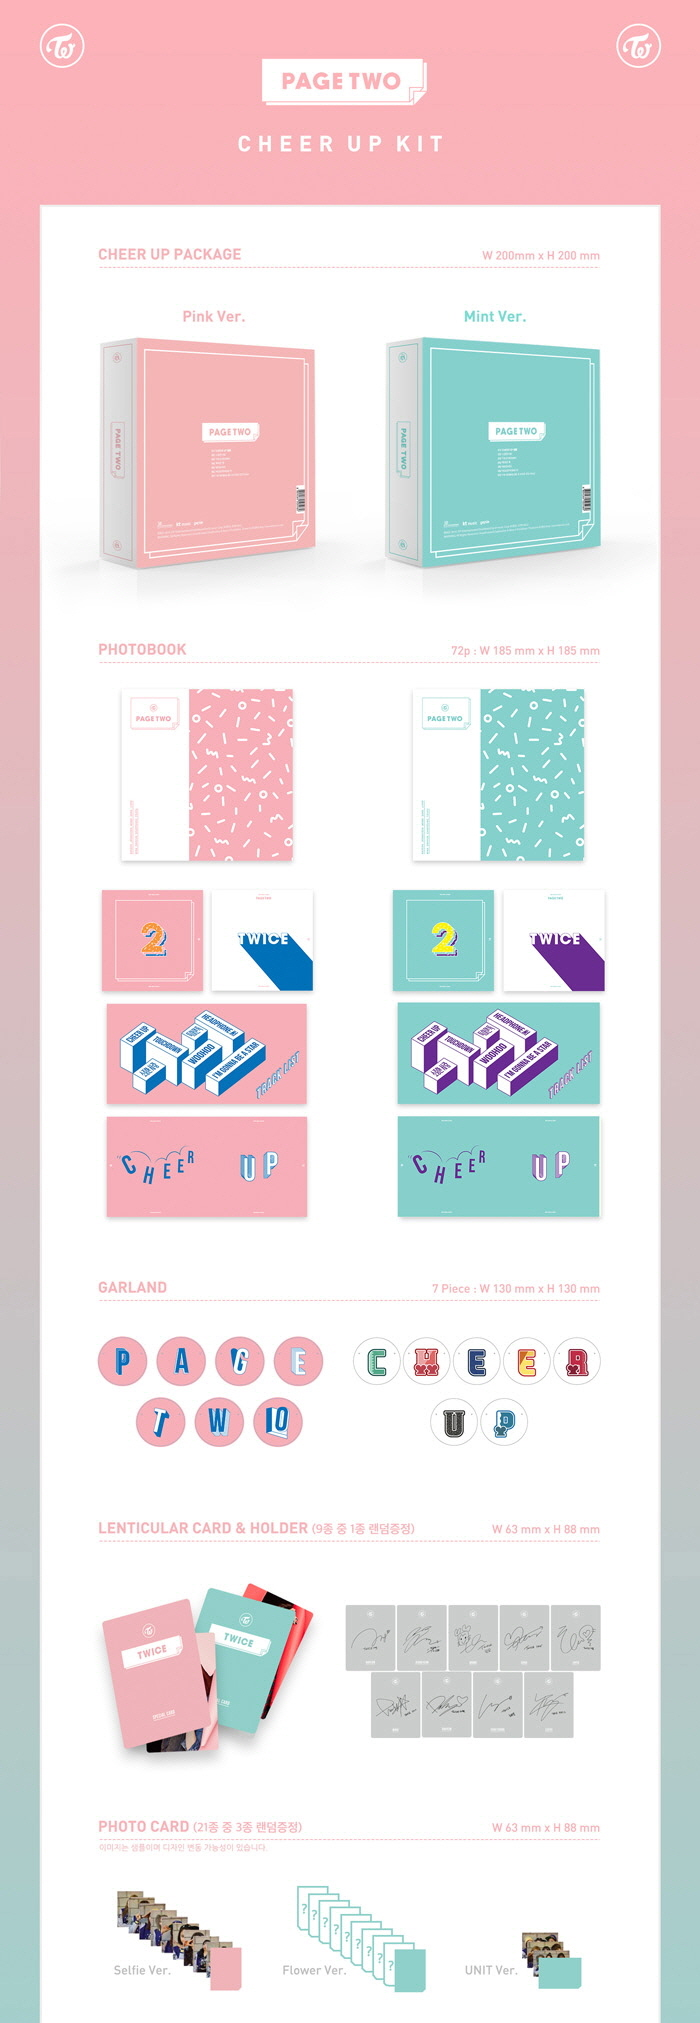 Details about Twice - Page Two 2nd Mini Album Pink/Mint Ver  New Sealed CD  KPOP